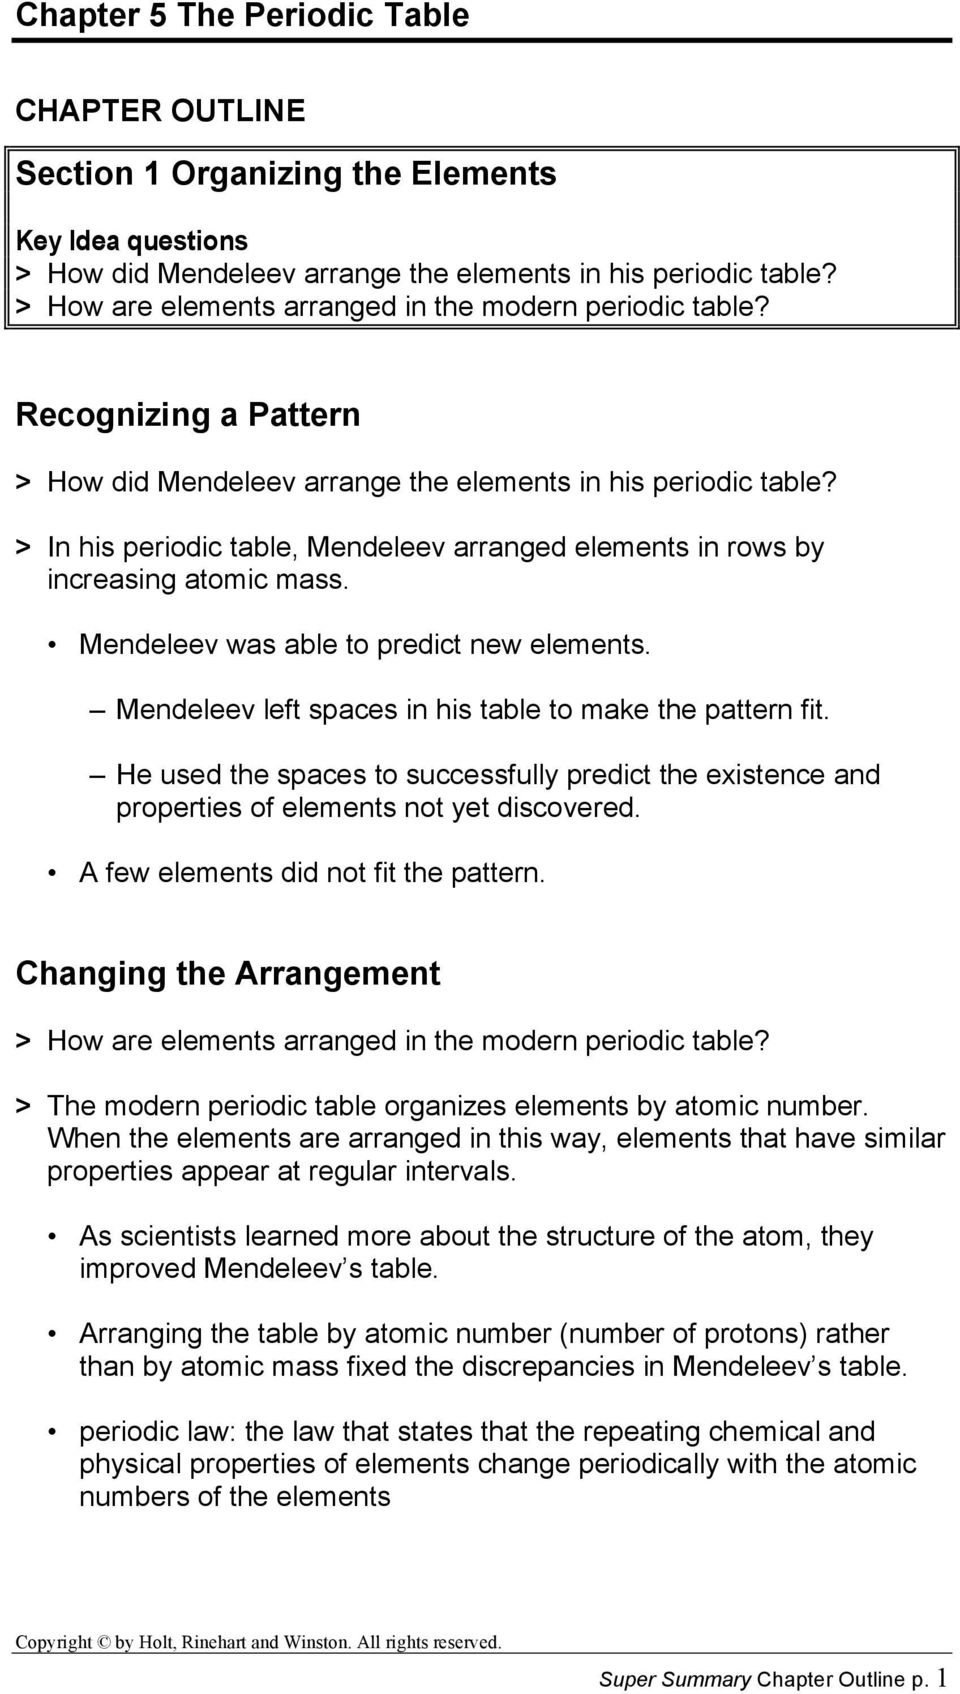 Mendeleev was able to predict new elements. Mendeleev left spaces in his table to make the pattern fit.